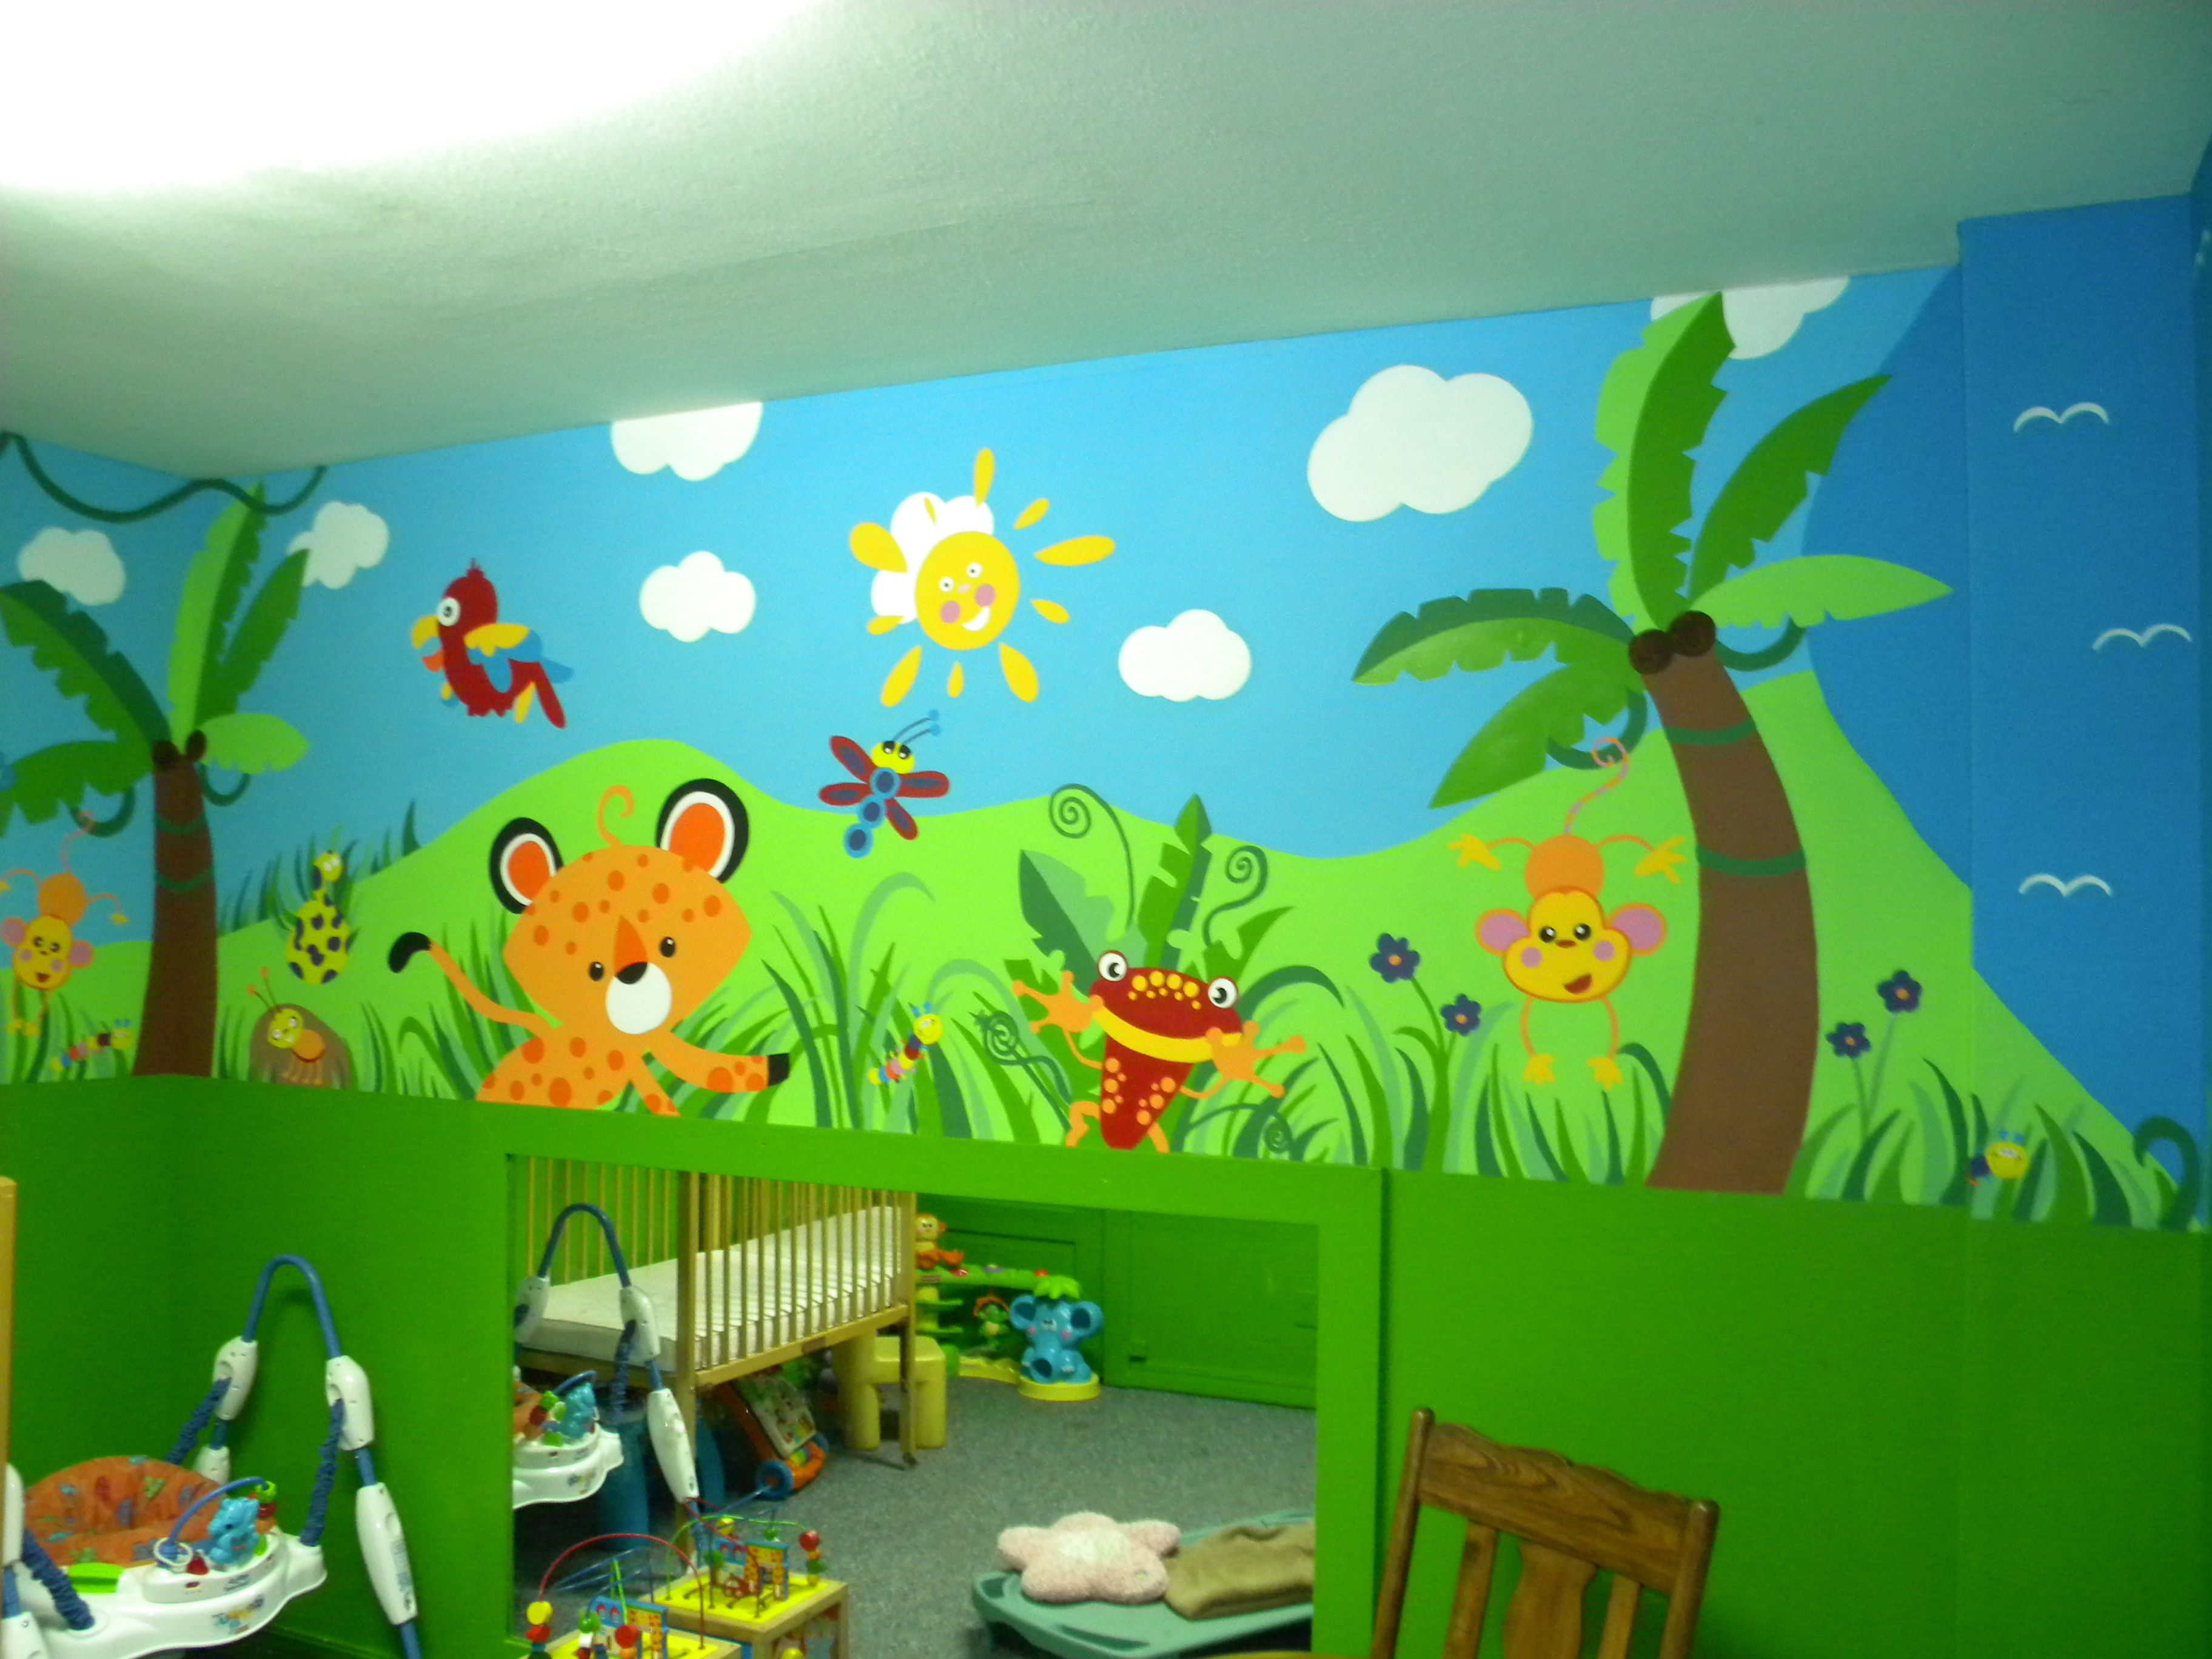 Daycare Jungle Mural Complete Wall 4 School Wall Decoration